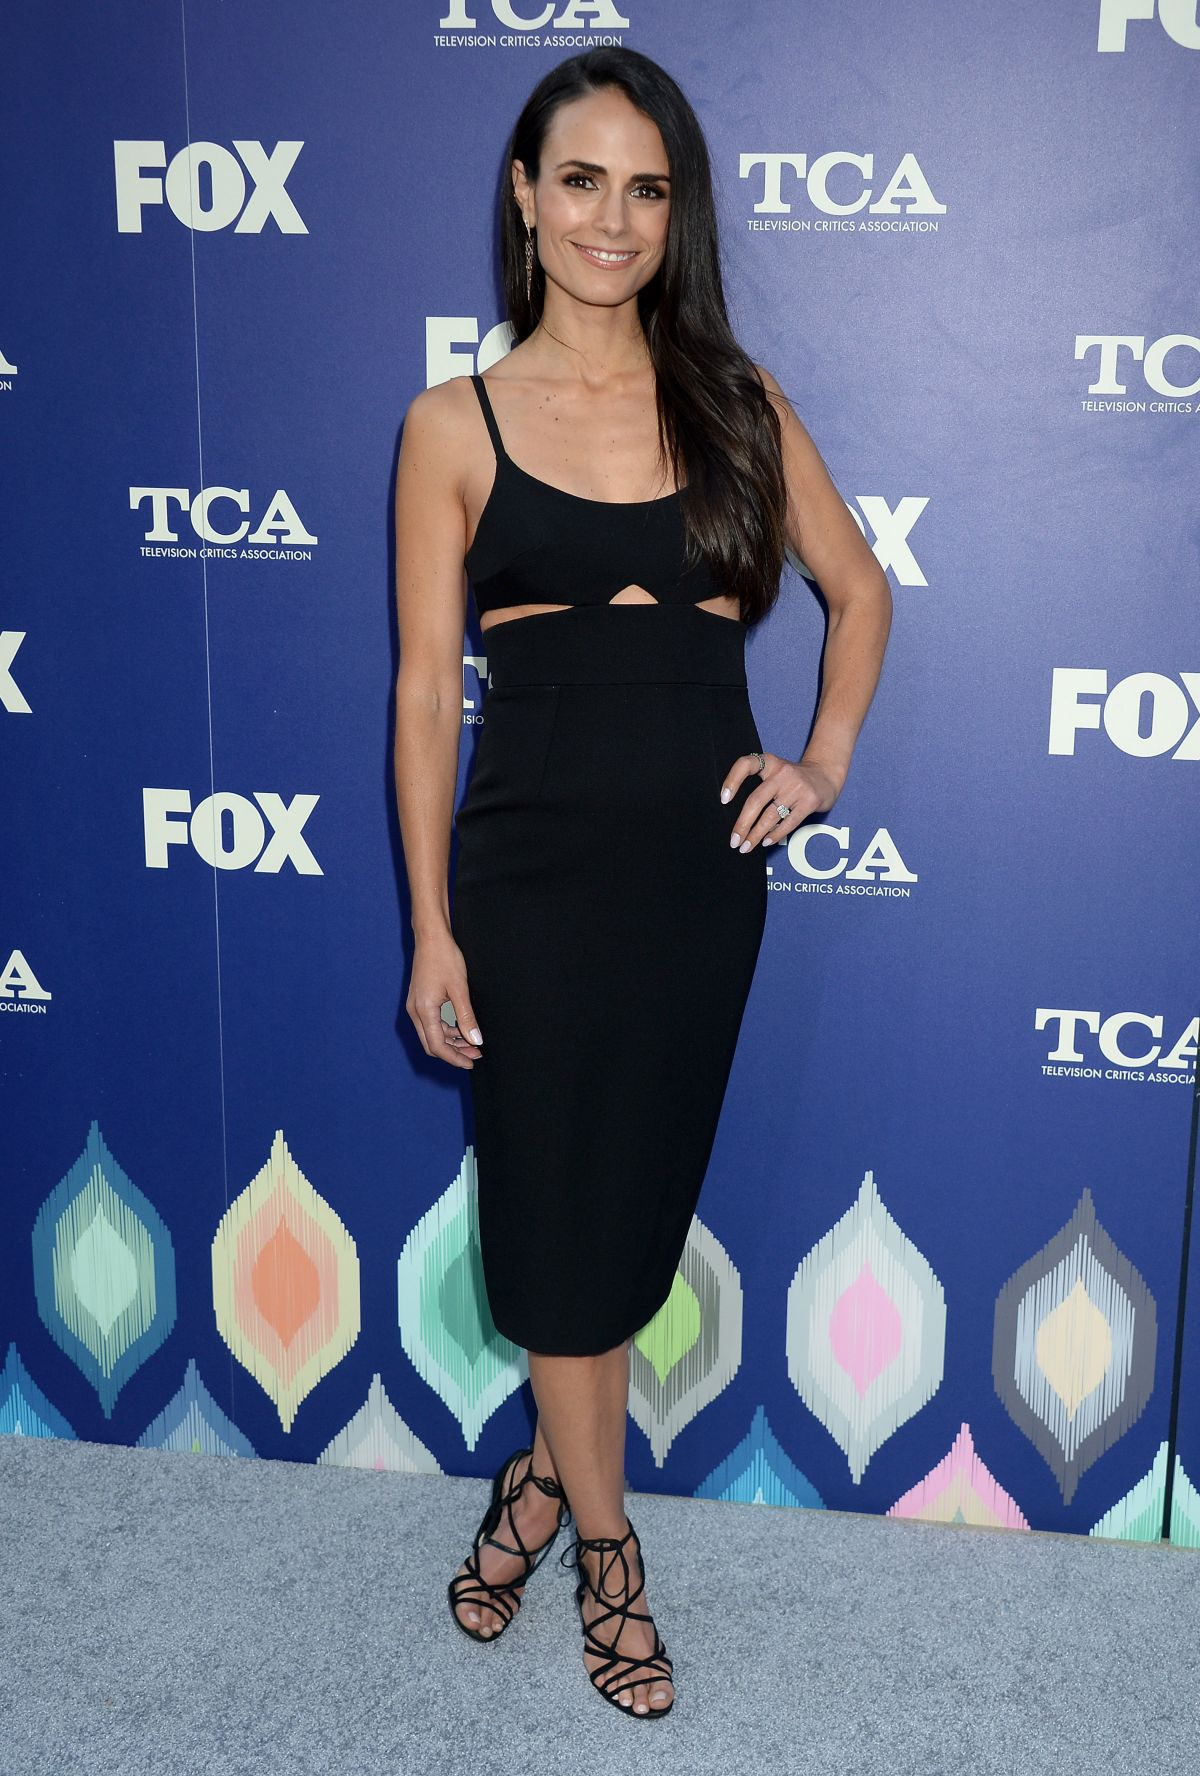 JORDANA BREWSTER at Fox Summer TCA All-star Party in West Hollywood 08/08/2016